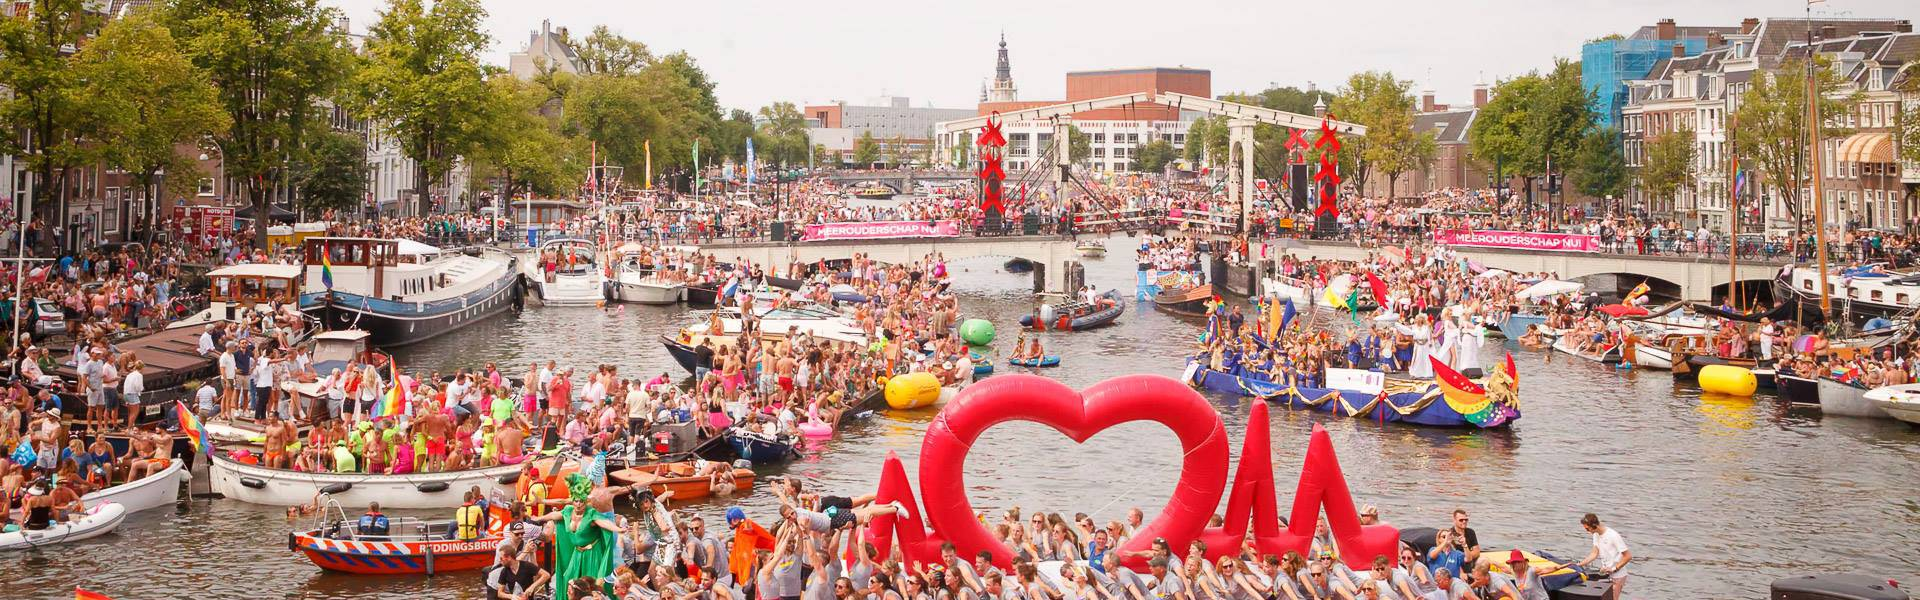 Large inflatable promotional material | X-Treme Creations A gigantic inflatable heart rate line (ECG) on the canal of Amsterdam during the Gay Pride with celebrating people Universitair Medisch Centrum Amsterdam  X-Treme Creations